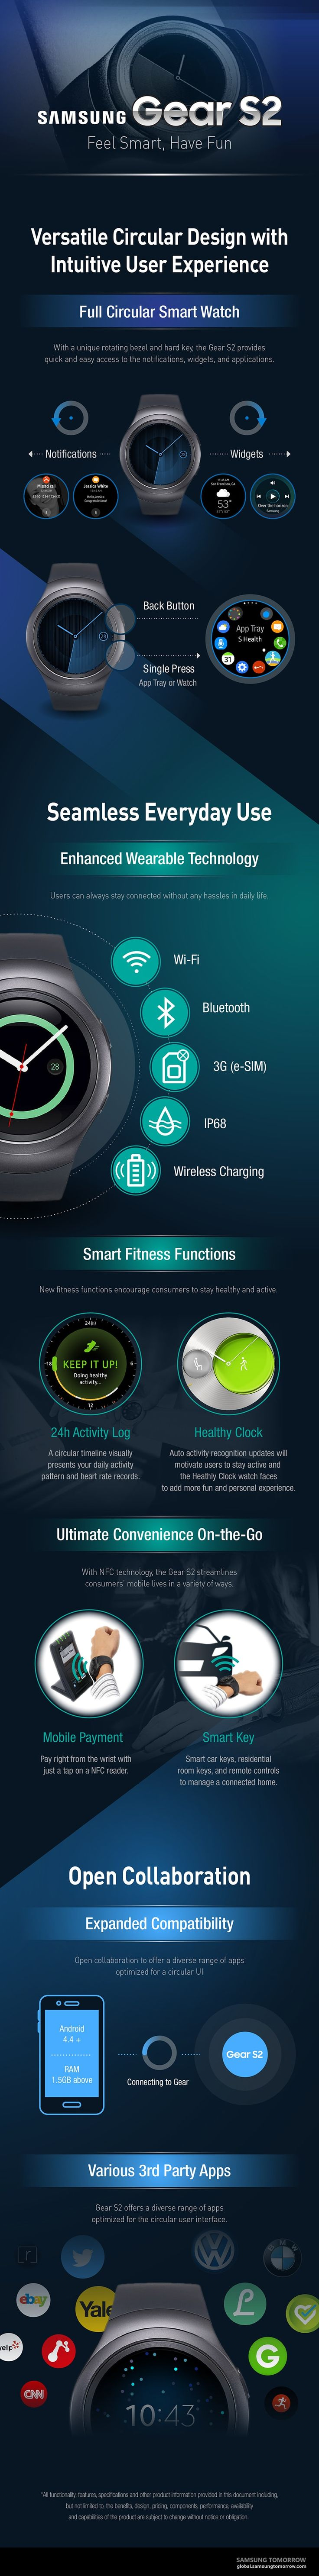 [Infographic] Circular Design and Intuitive UX of Gear S2 9/4/15 by SamsungTomorrow